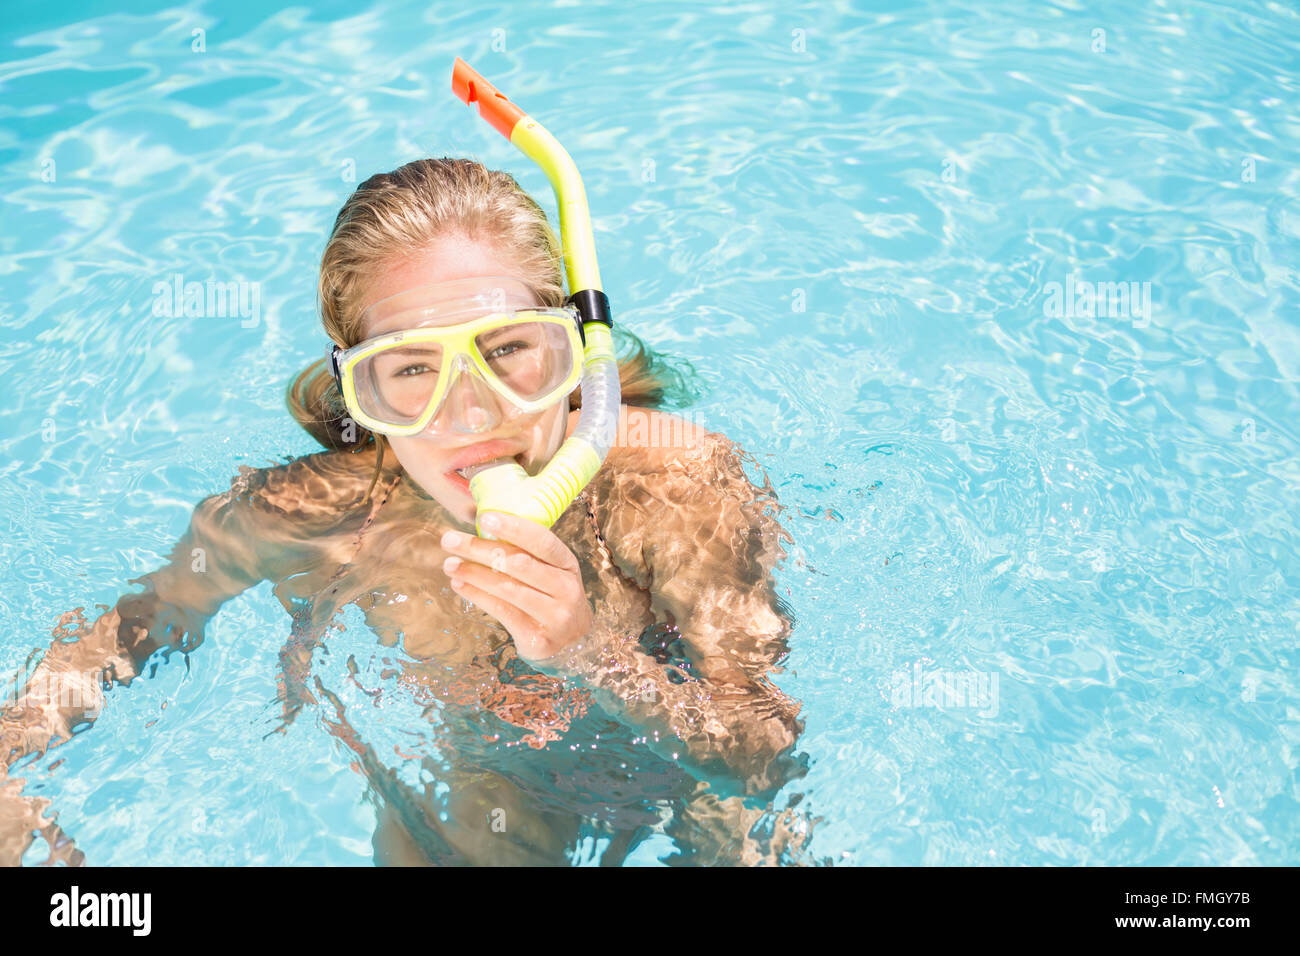 Portrait of woman with snorkel gear swimming in pool Stock Photo ...